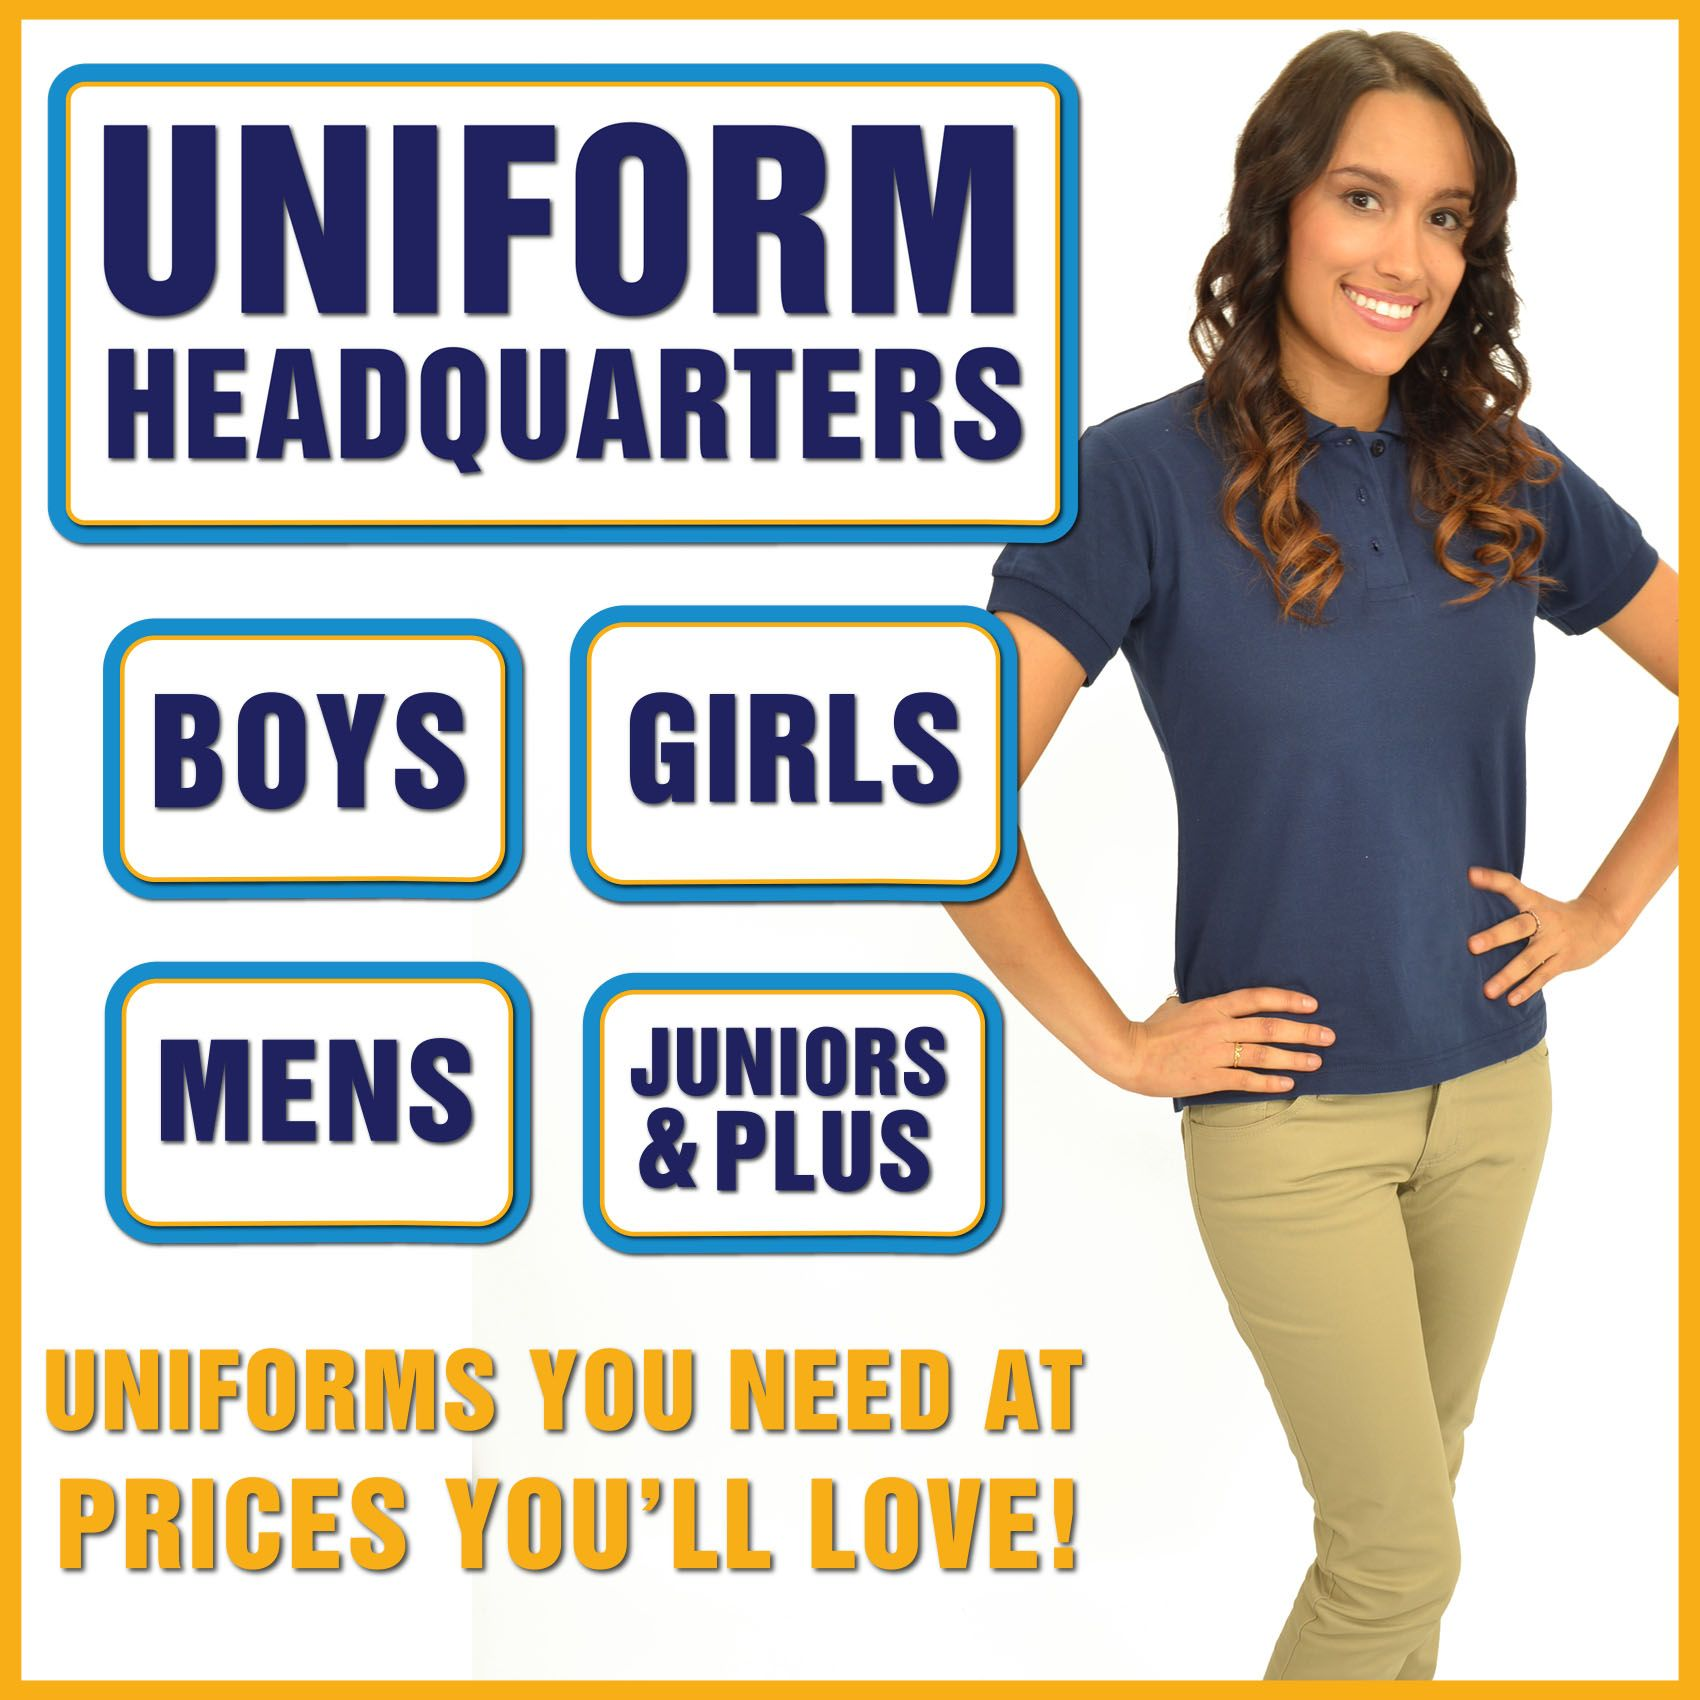 b896a6f06ad Citi Trends is your uniform headquarters and Citi Trends has the uniforms  you need at prices you ll love. Uniforms for mens